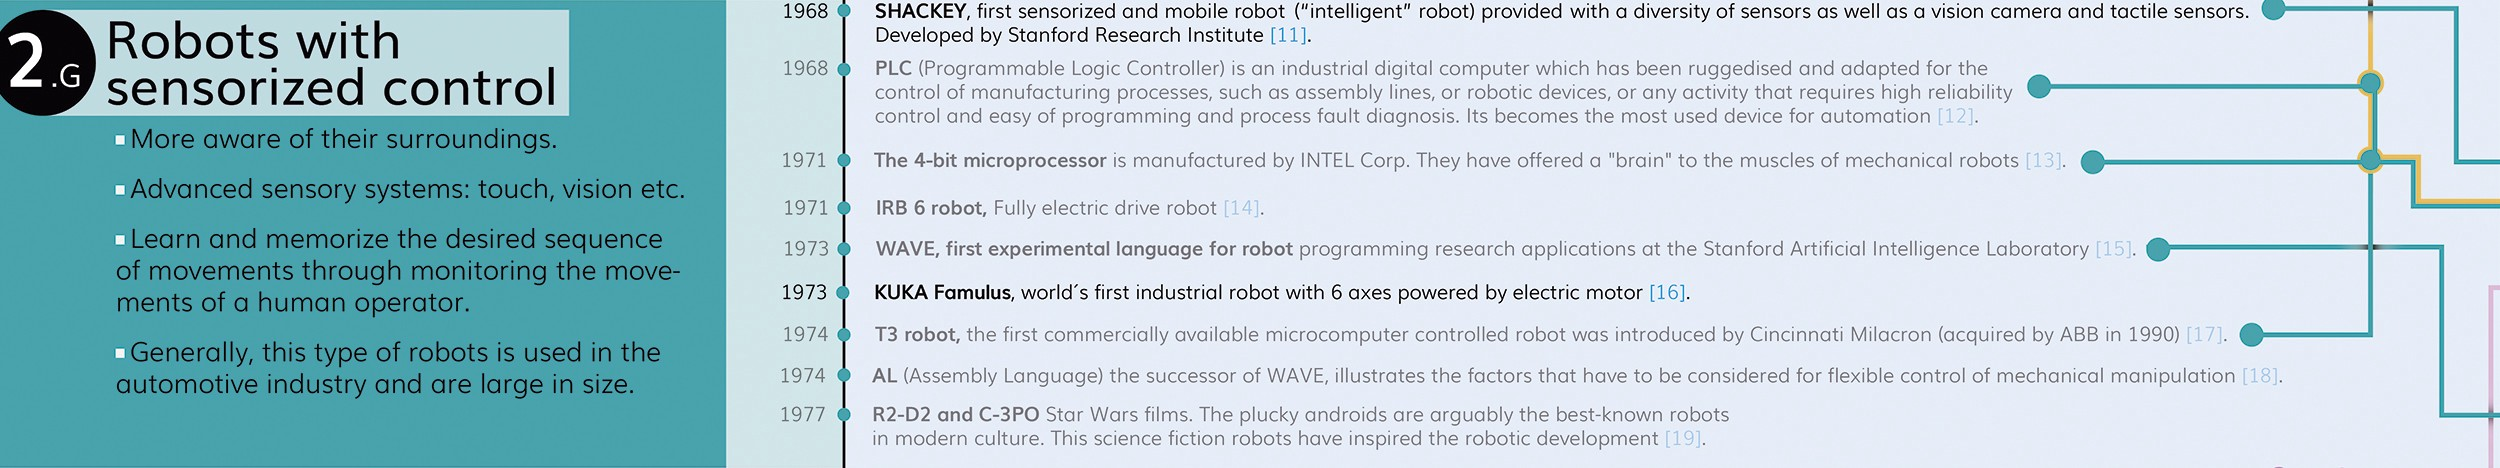 Envisioning the future of robotics - By